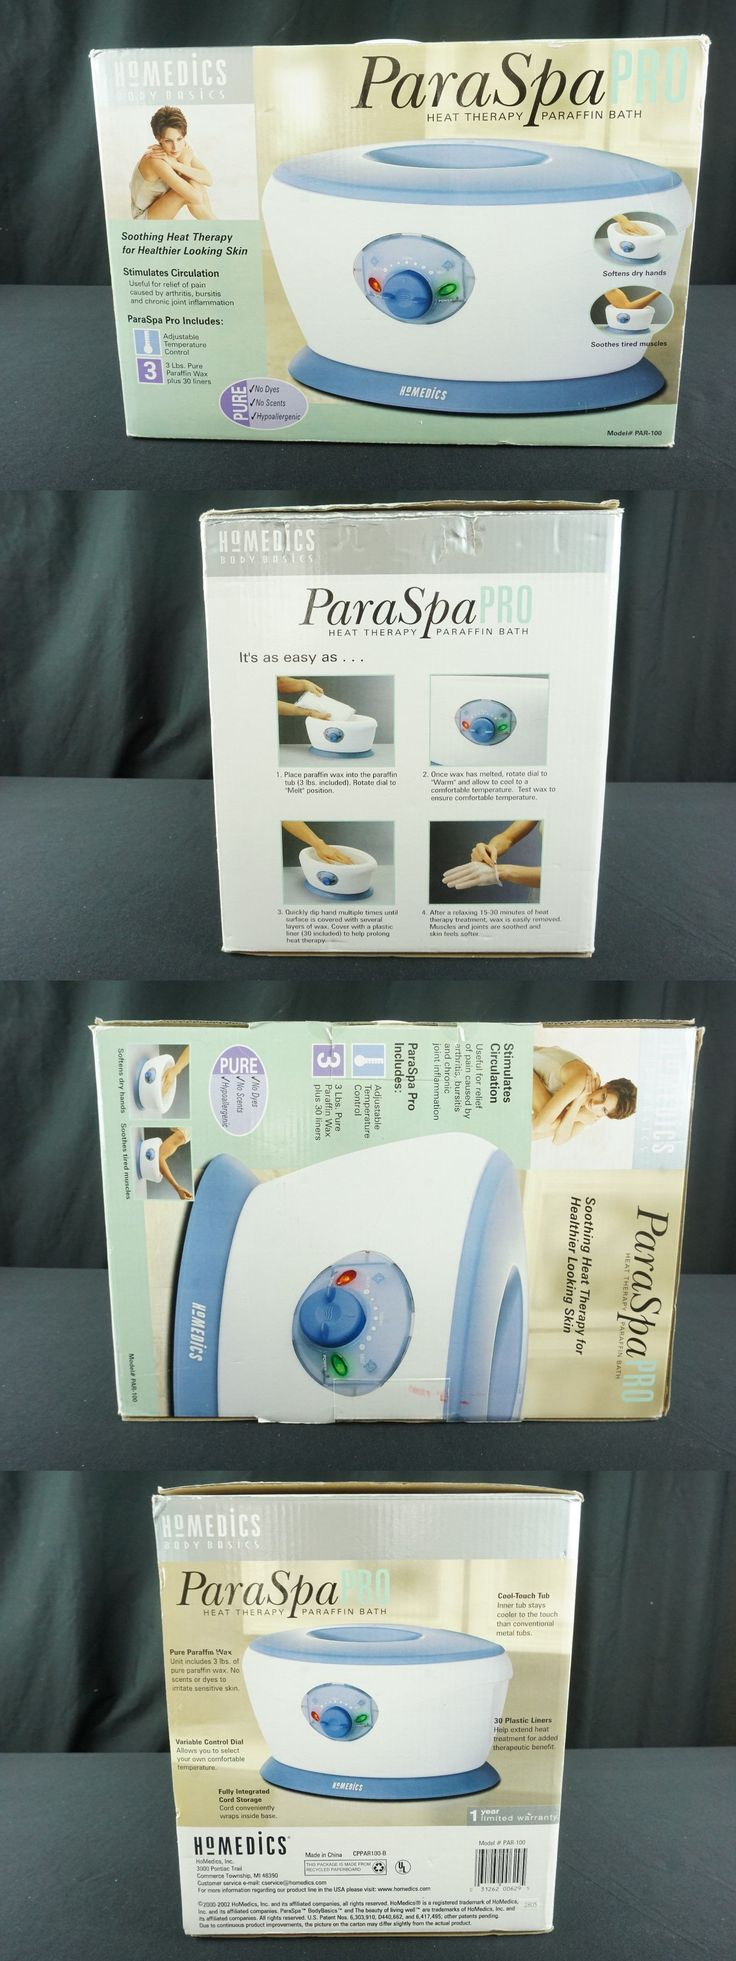 Spas Baths and Supplies: Homedics Paraspa Par-100 Paraffin Bath Heat Therapy System New In Box -> BUY IT NOW ONLY: $39.95 on eBay!